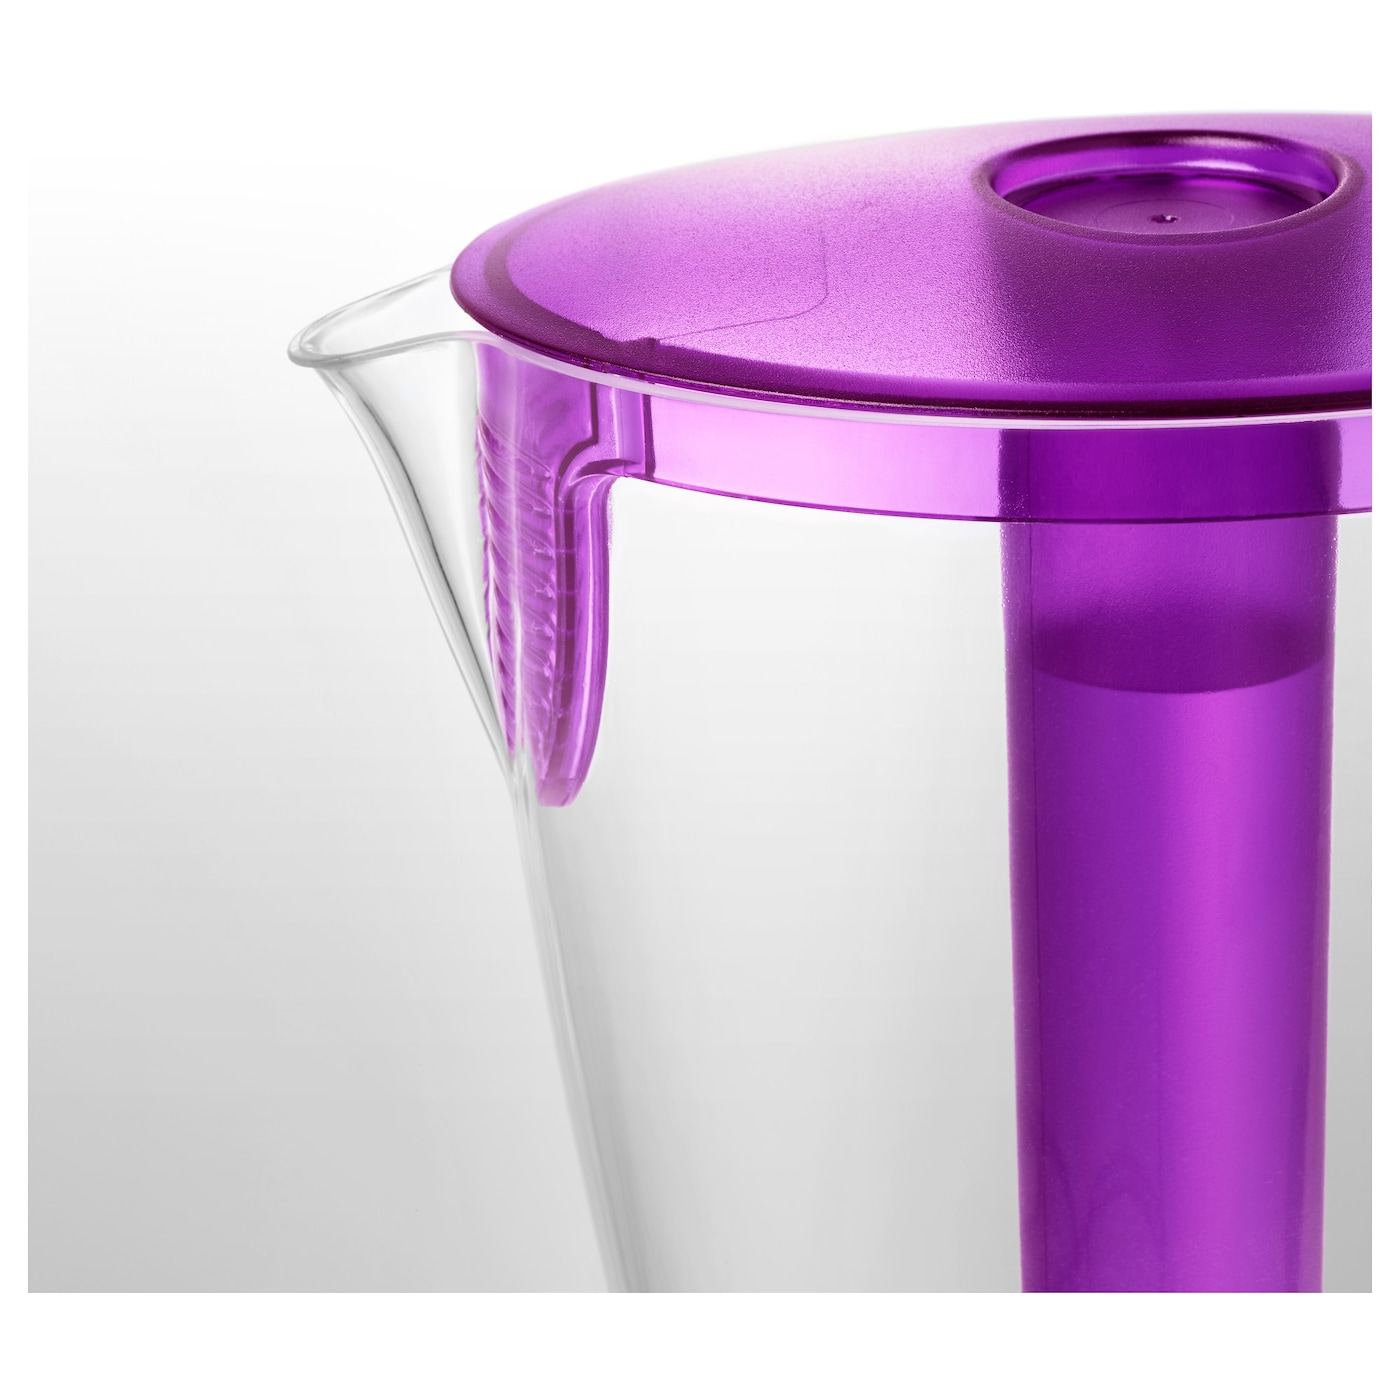 IKEA SOMMAR 2017 jug with lid The insert can be removed and frozen. Keeps the drink cold longer.